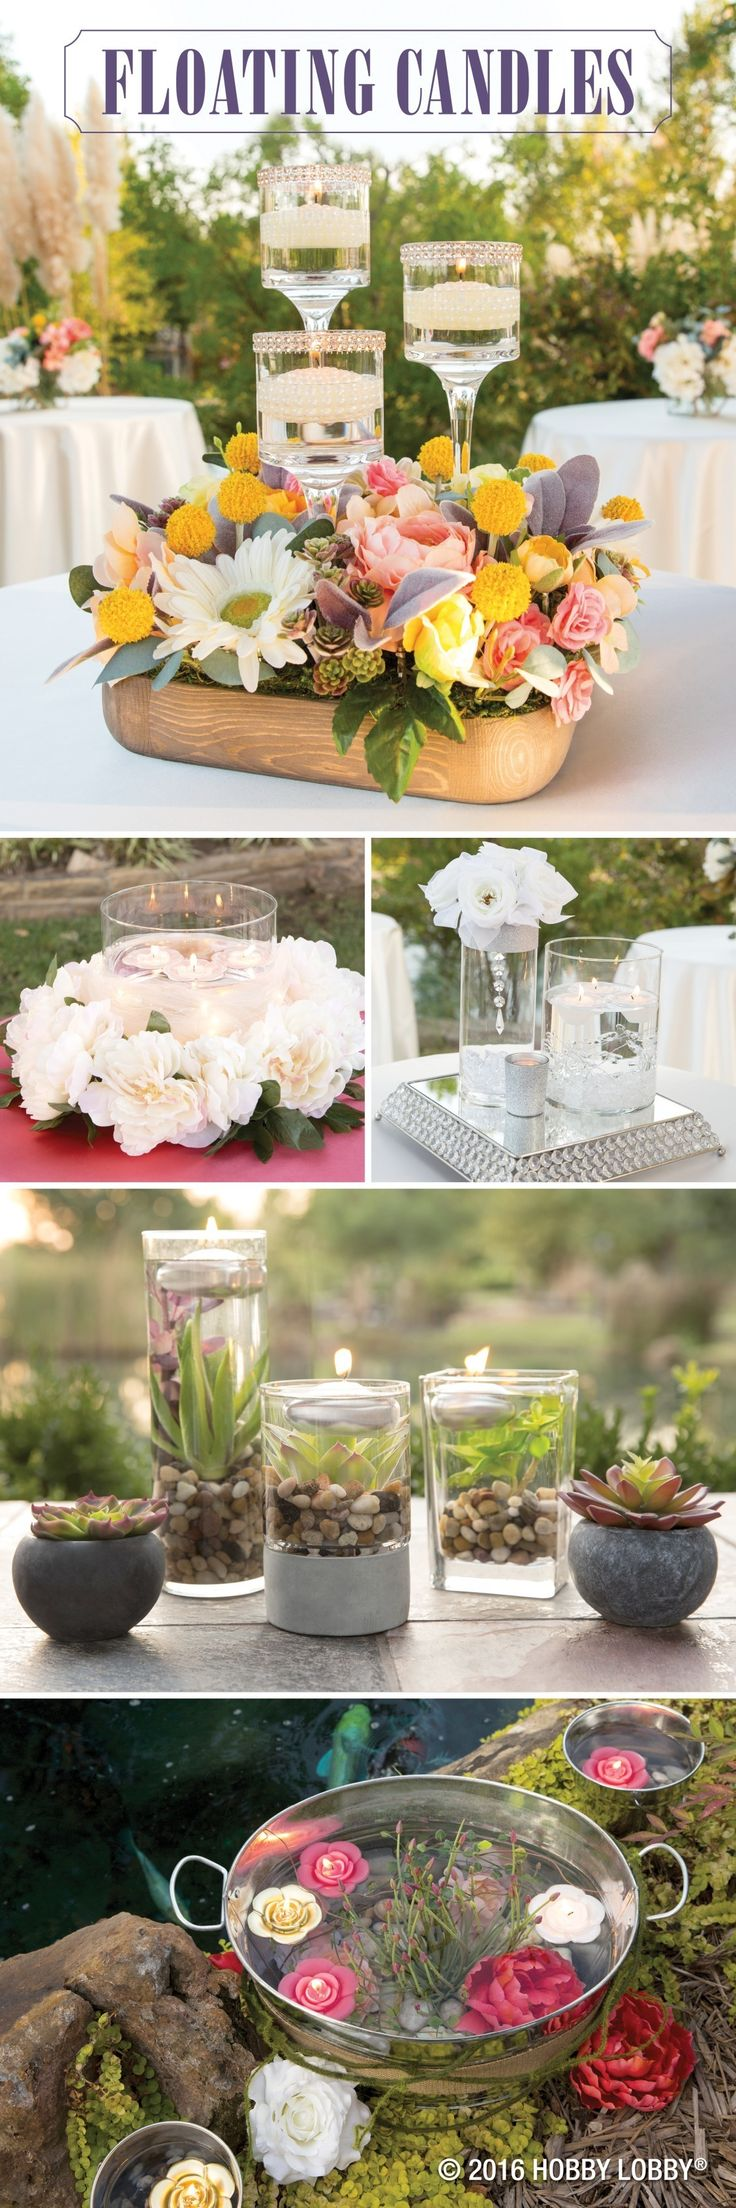 Diy Whimsical Wedding Decorations Decor That Fits Your Style